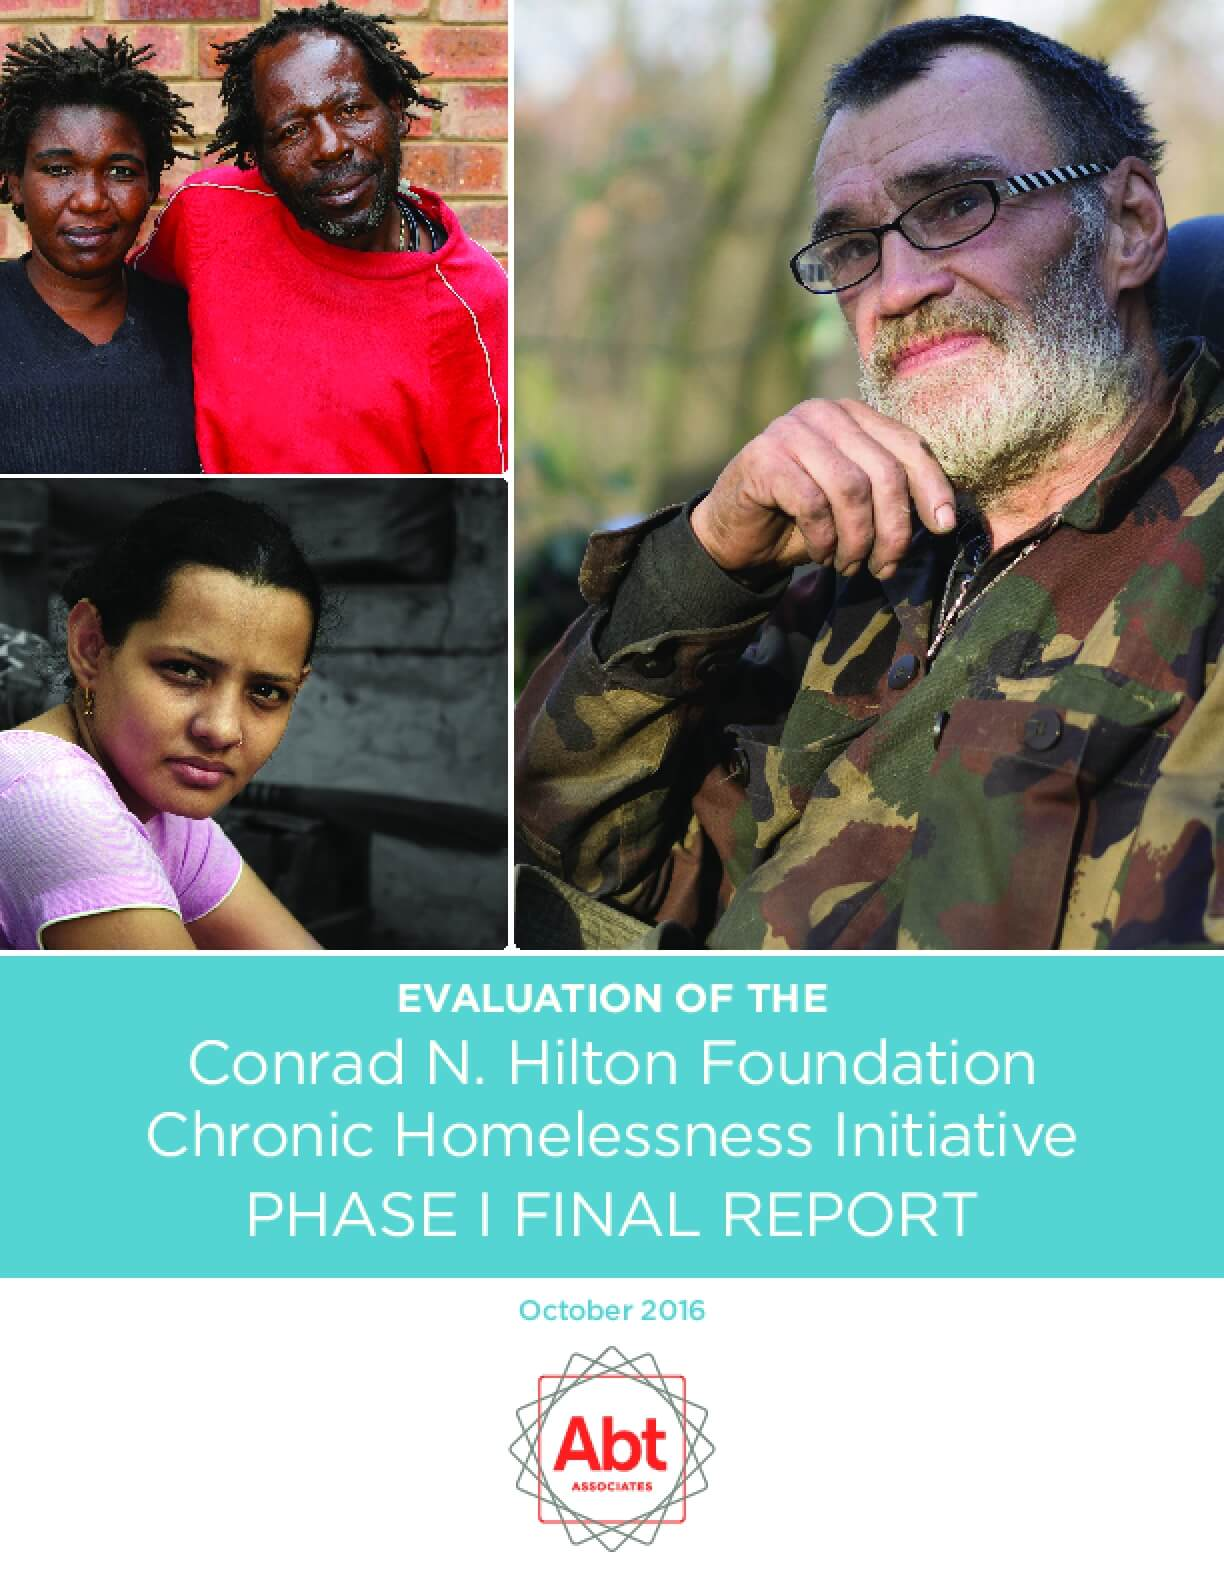 Evaluation of the Conrad N. Hilton Foundation Chronic Homelessness Initiative: 2016 Evaluation Report, Phase I